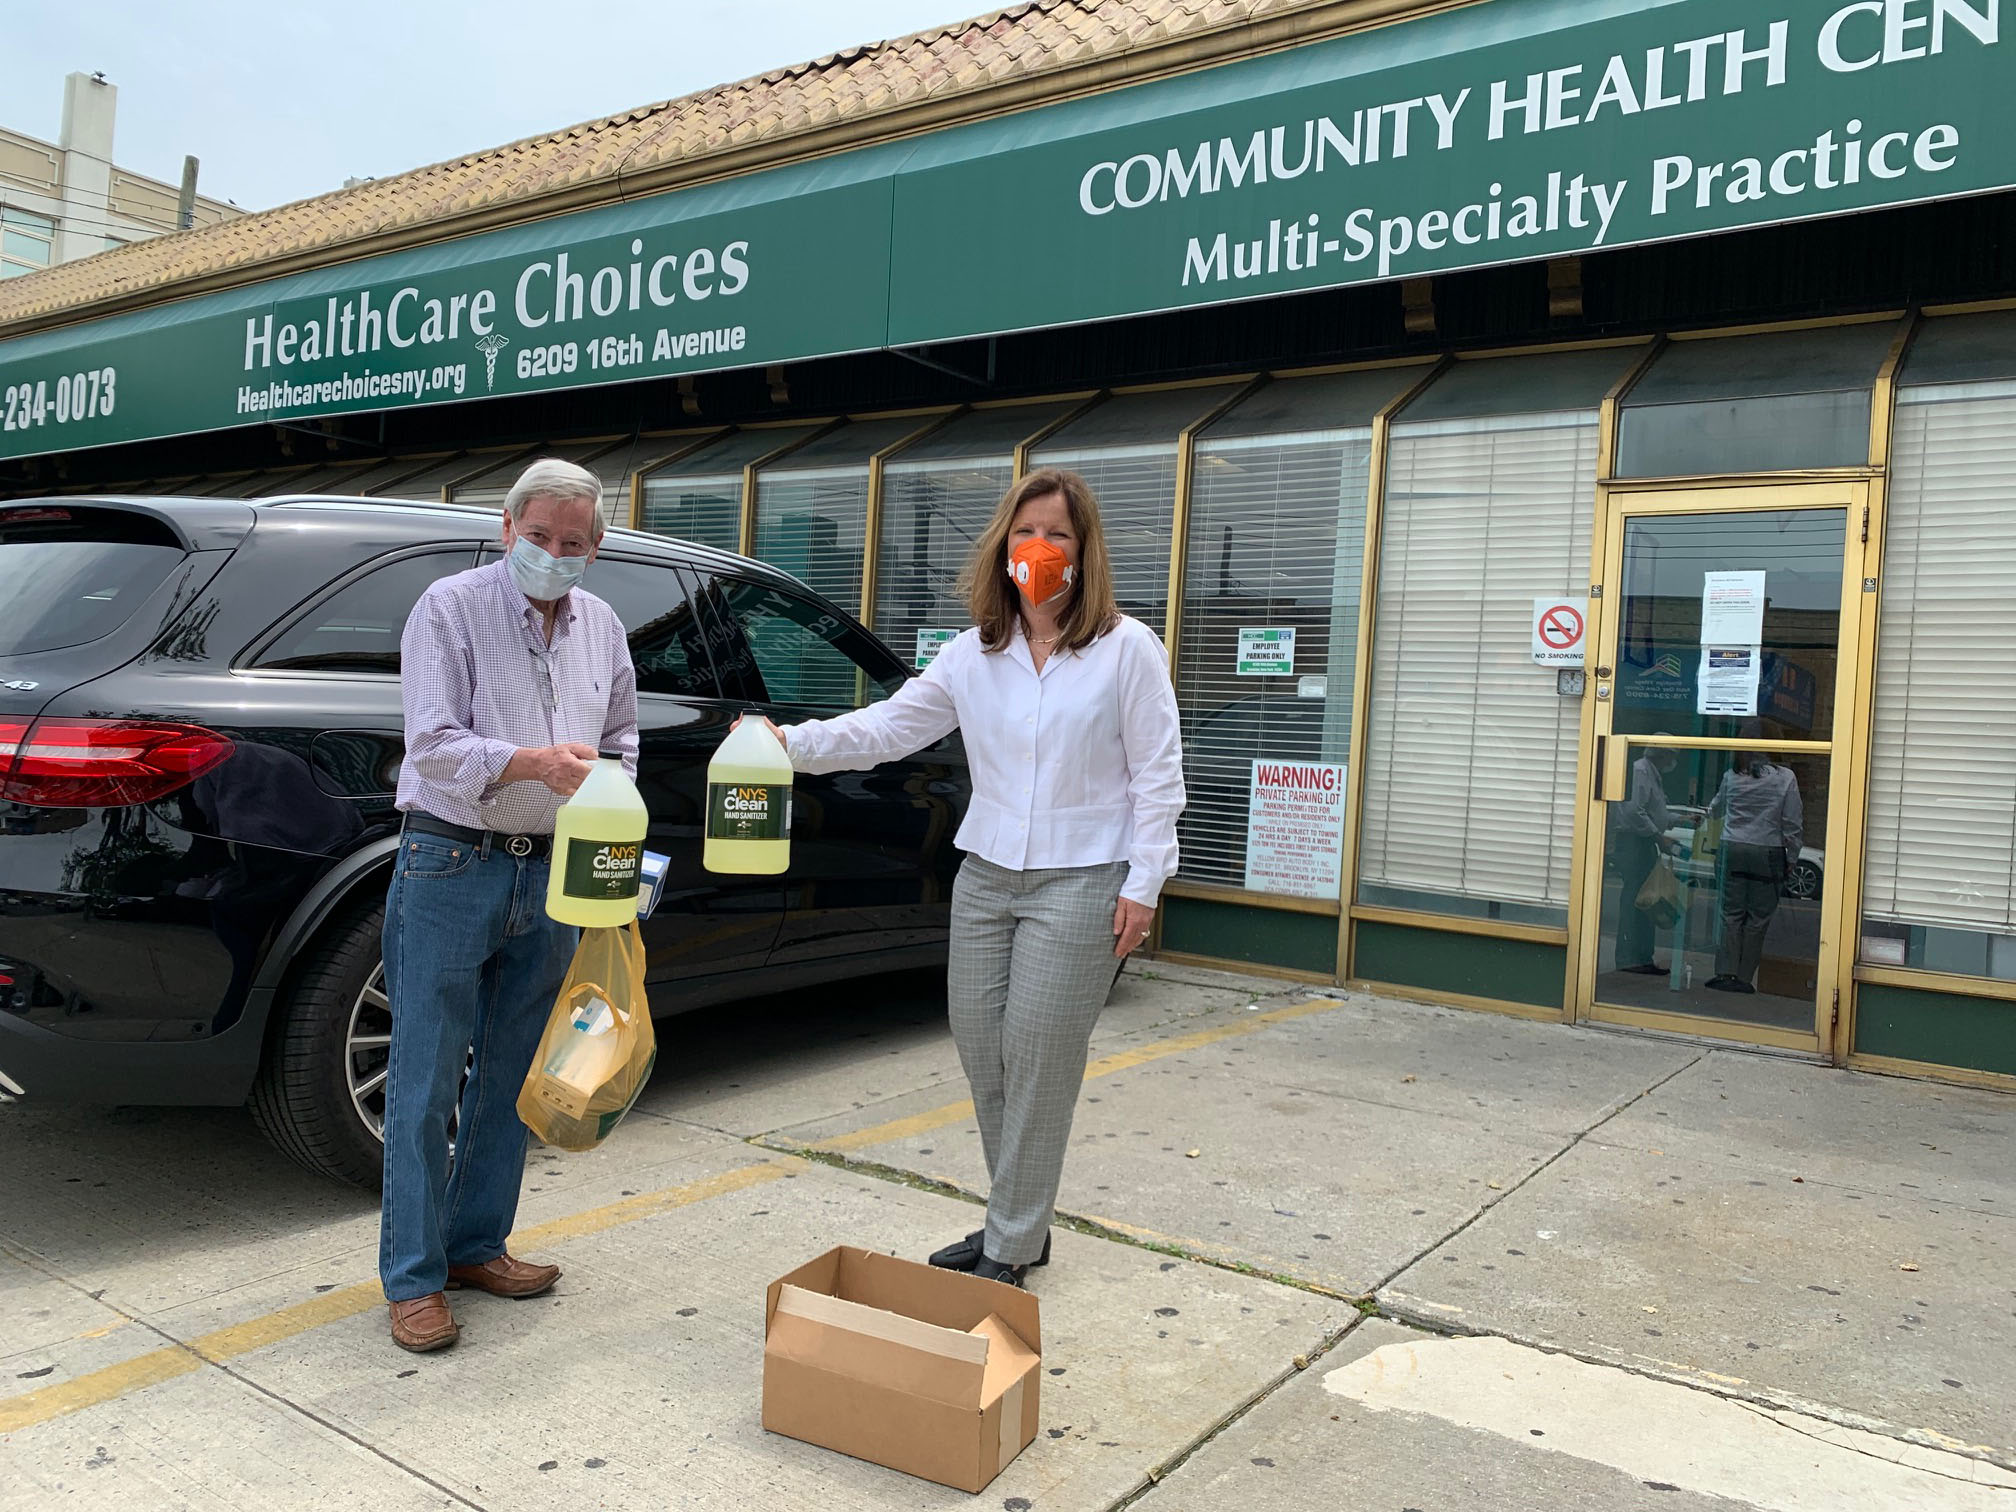 Assemblyman Abbate delivers masks and hand sanitizer, during the COVID-19 pandemic, to our local Community Health Center.